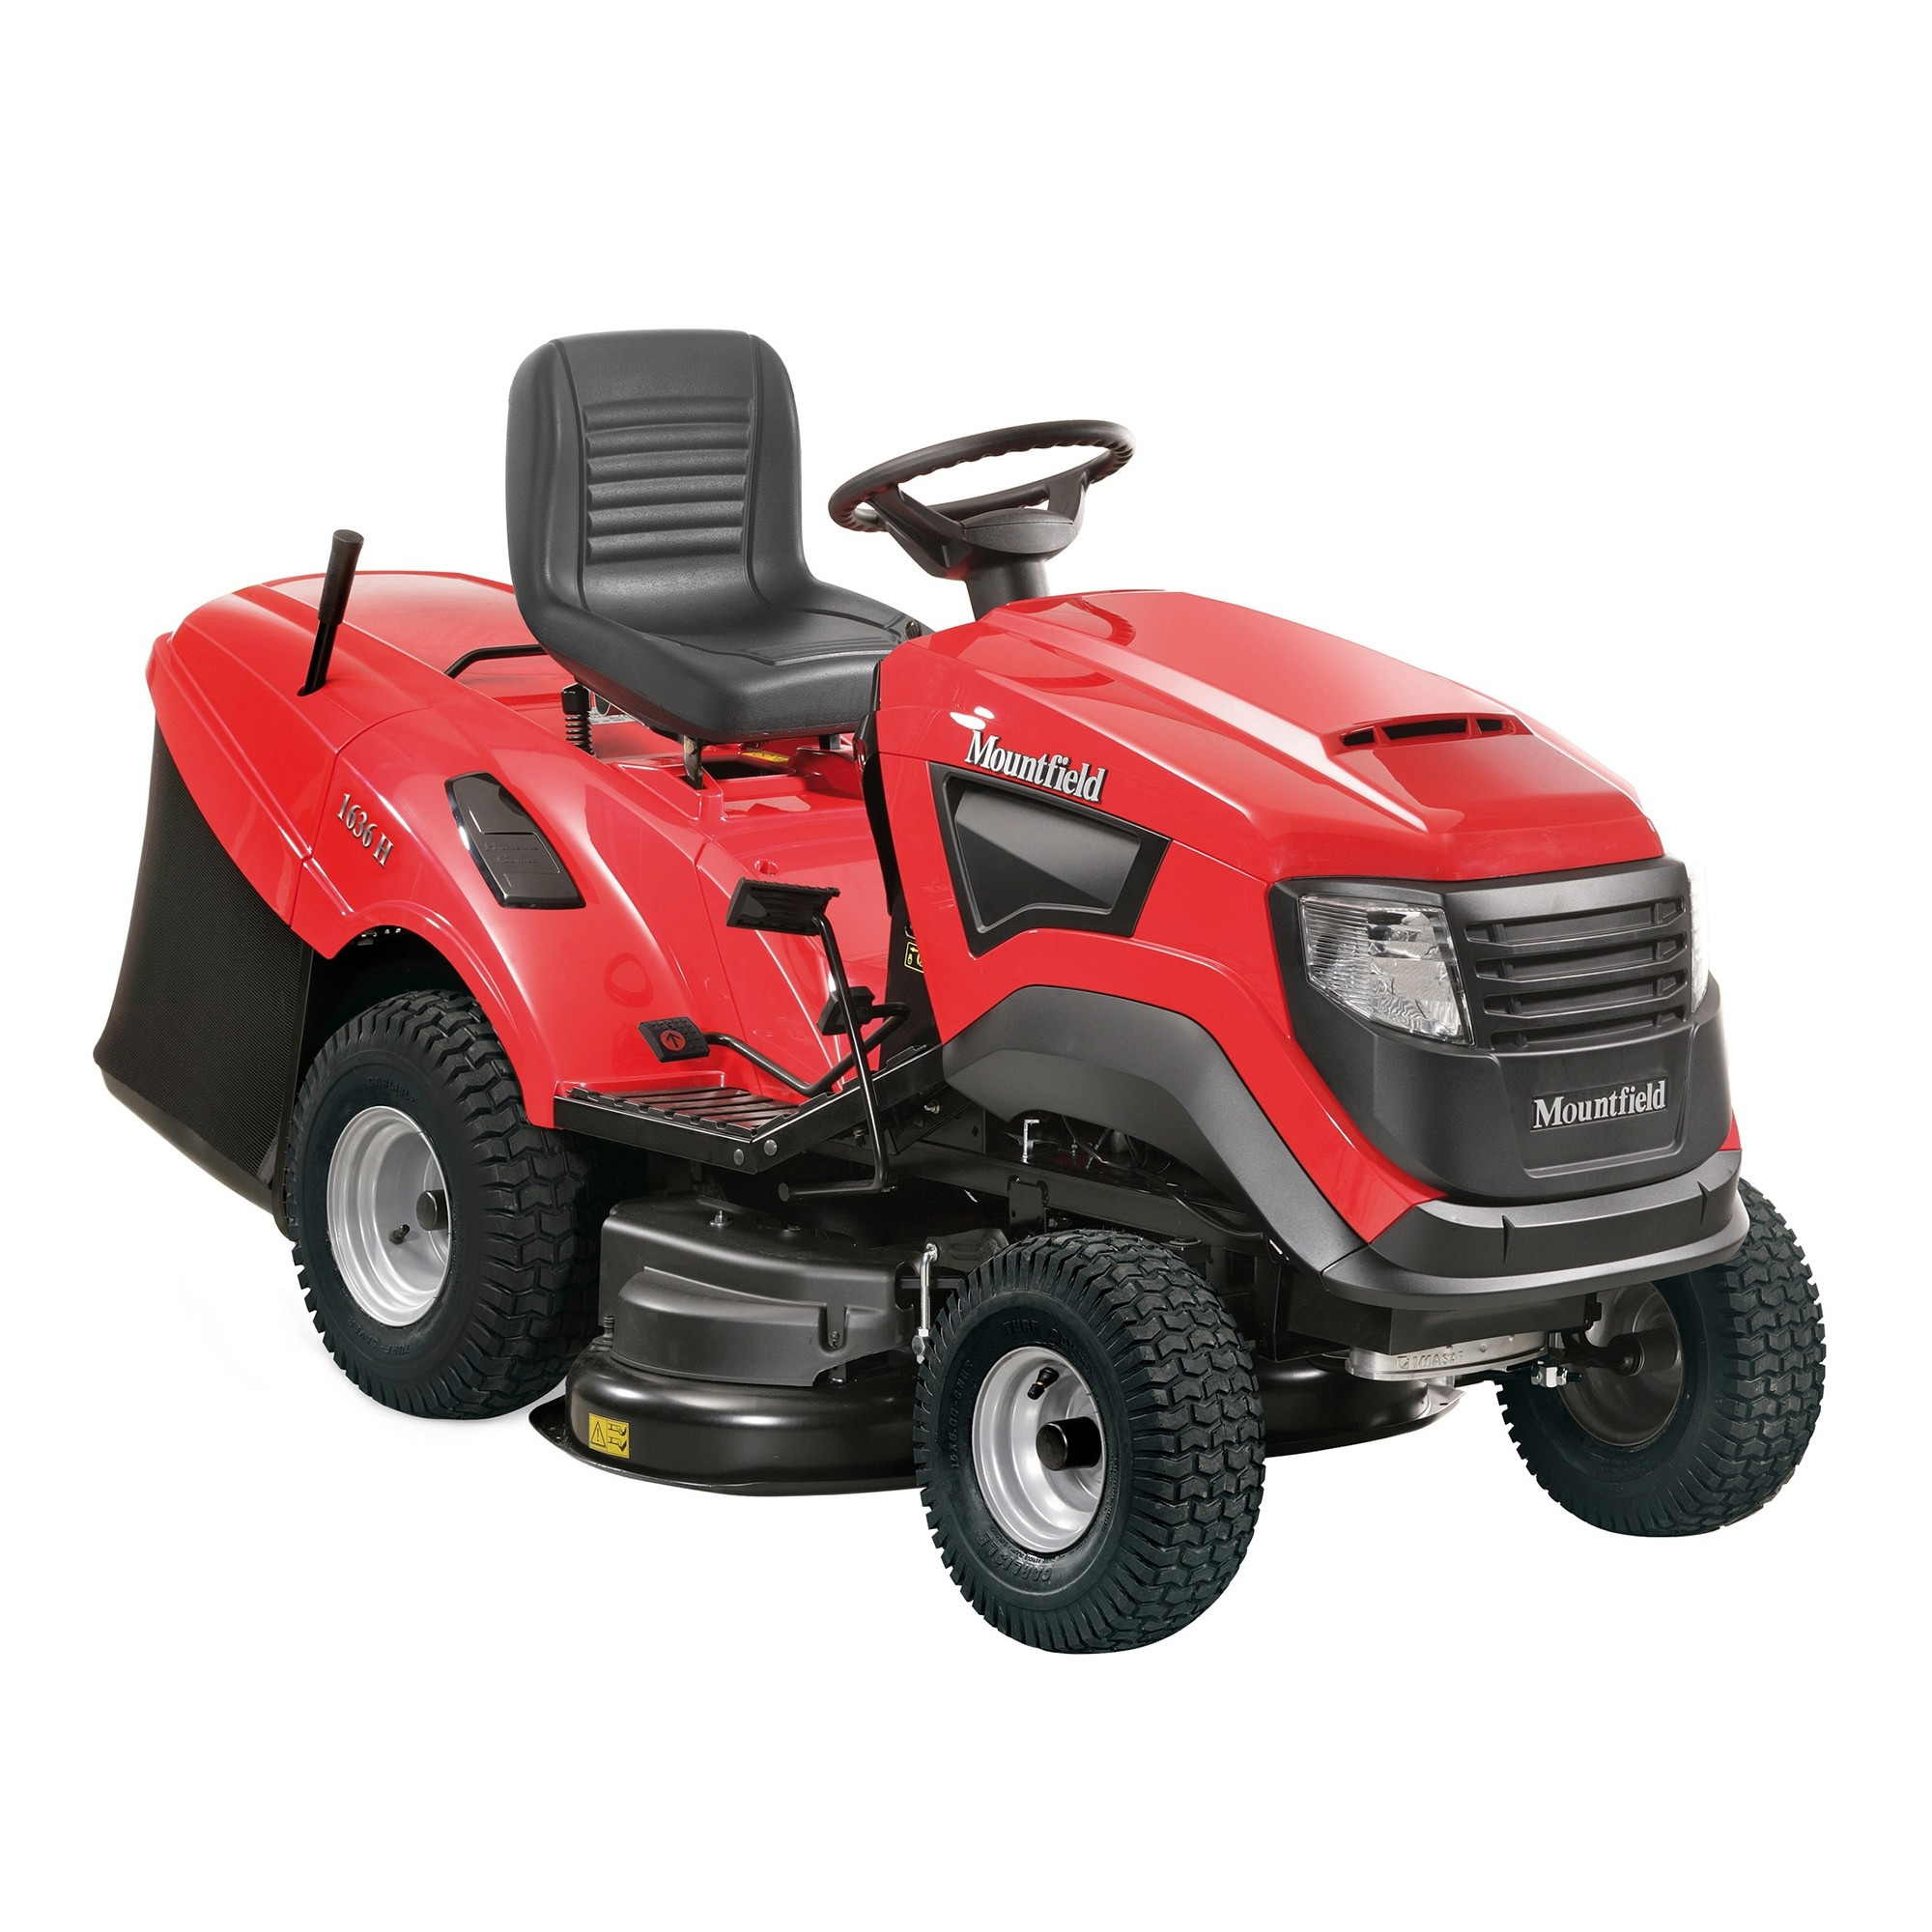 Mountfield 1636H Lawn Tractor